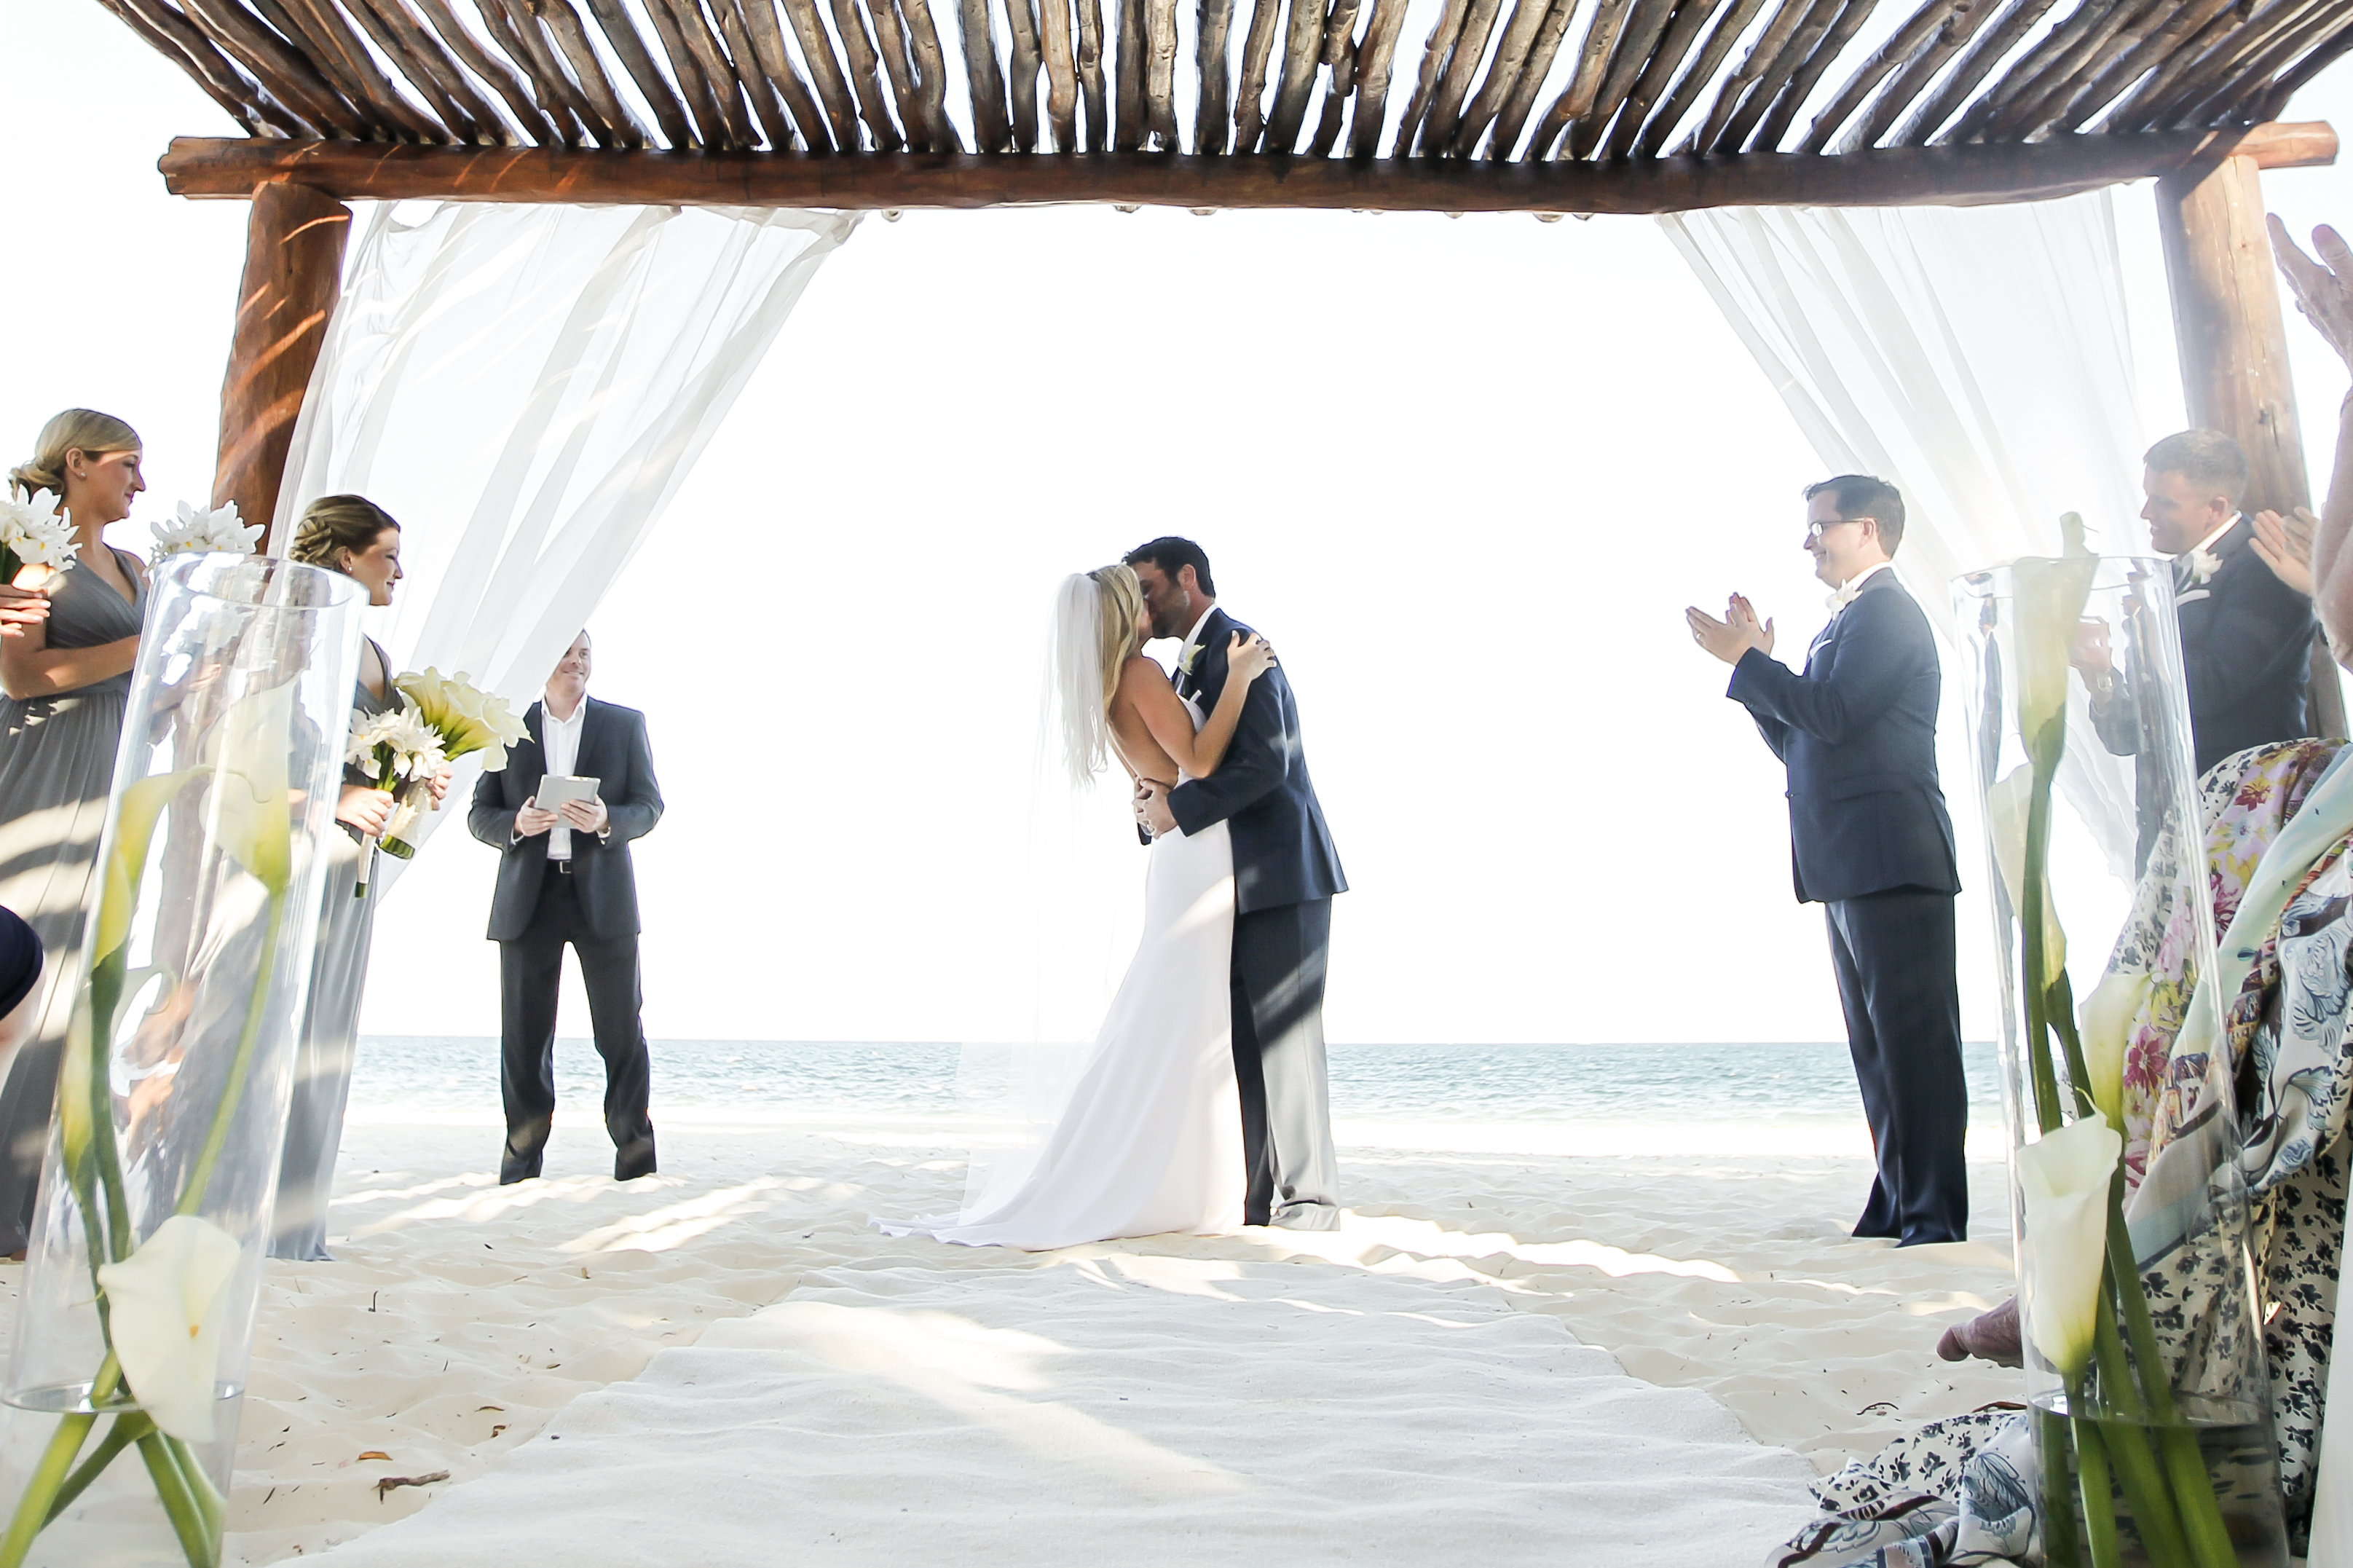 9 Reasons to Hire a Stateside Photographer for Your Destination Wedding